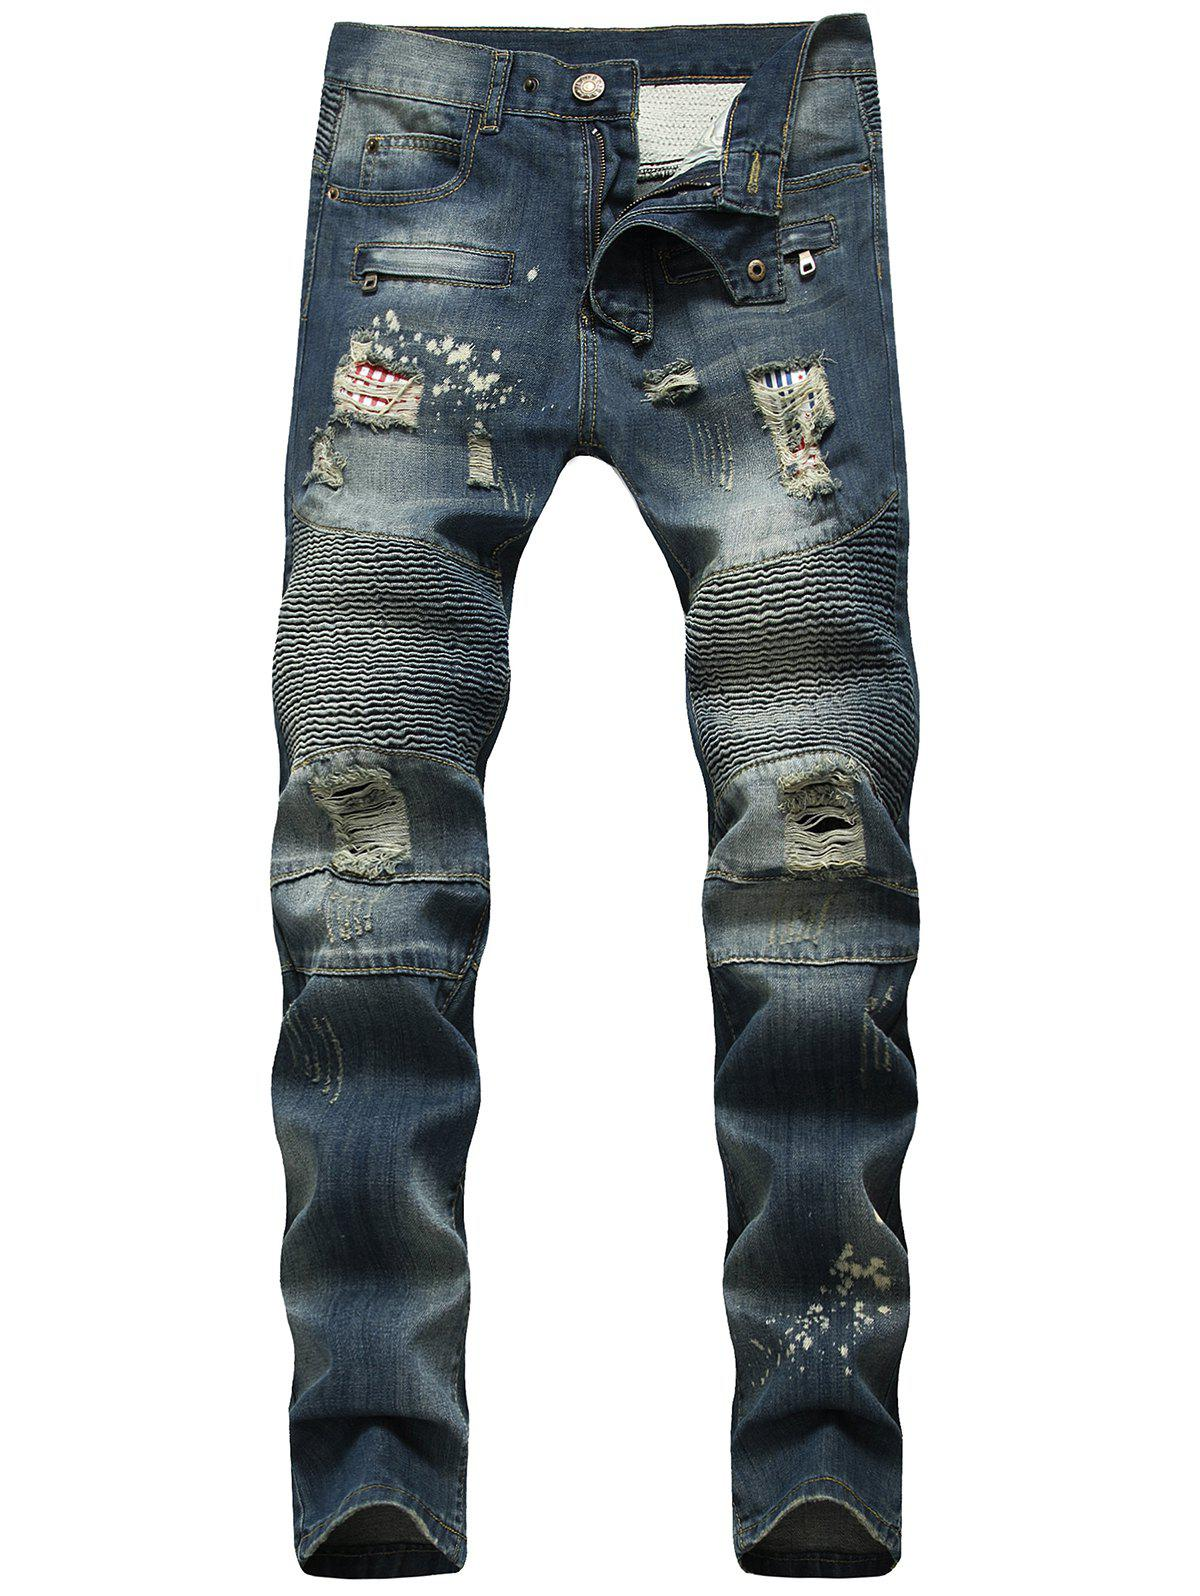 New Ripped Patch Narrow Feet Biker Jeans